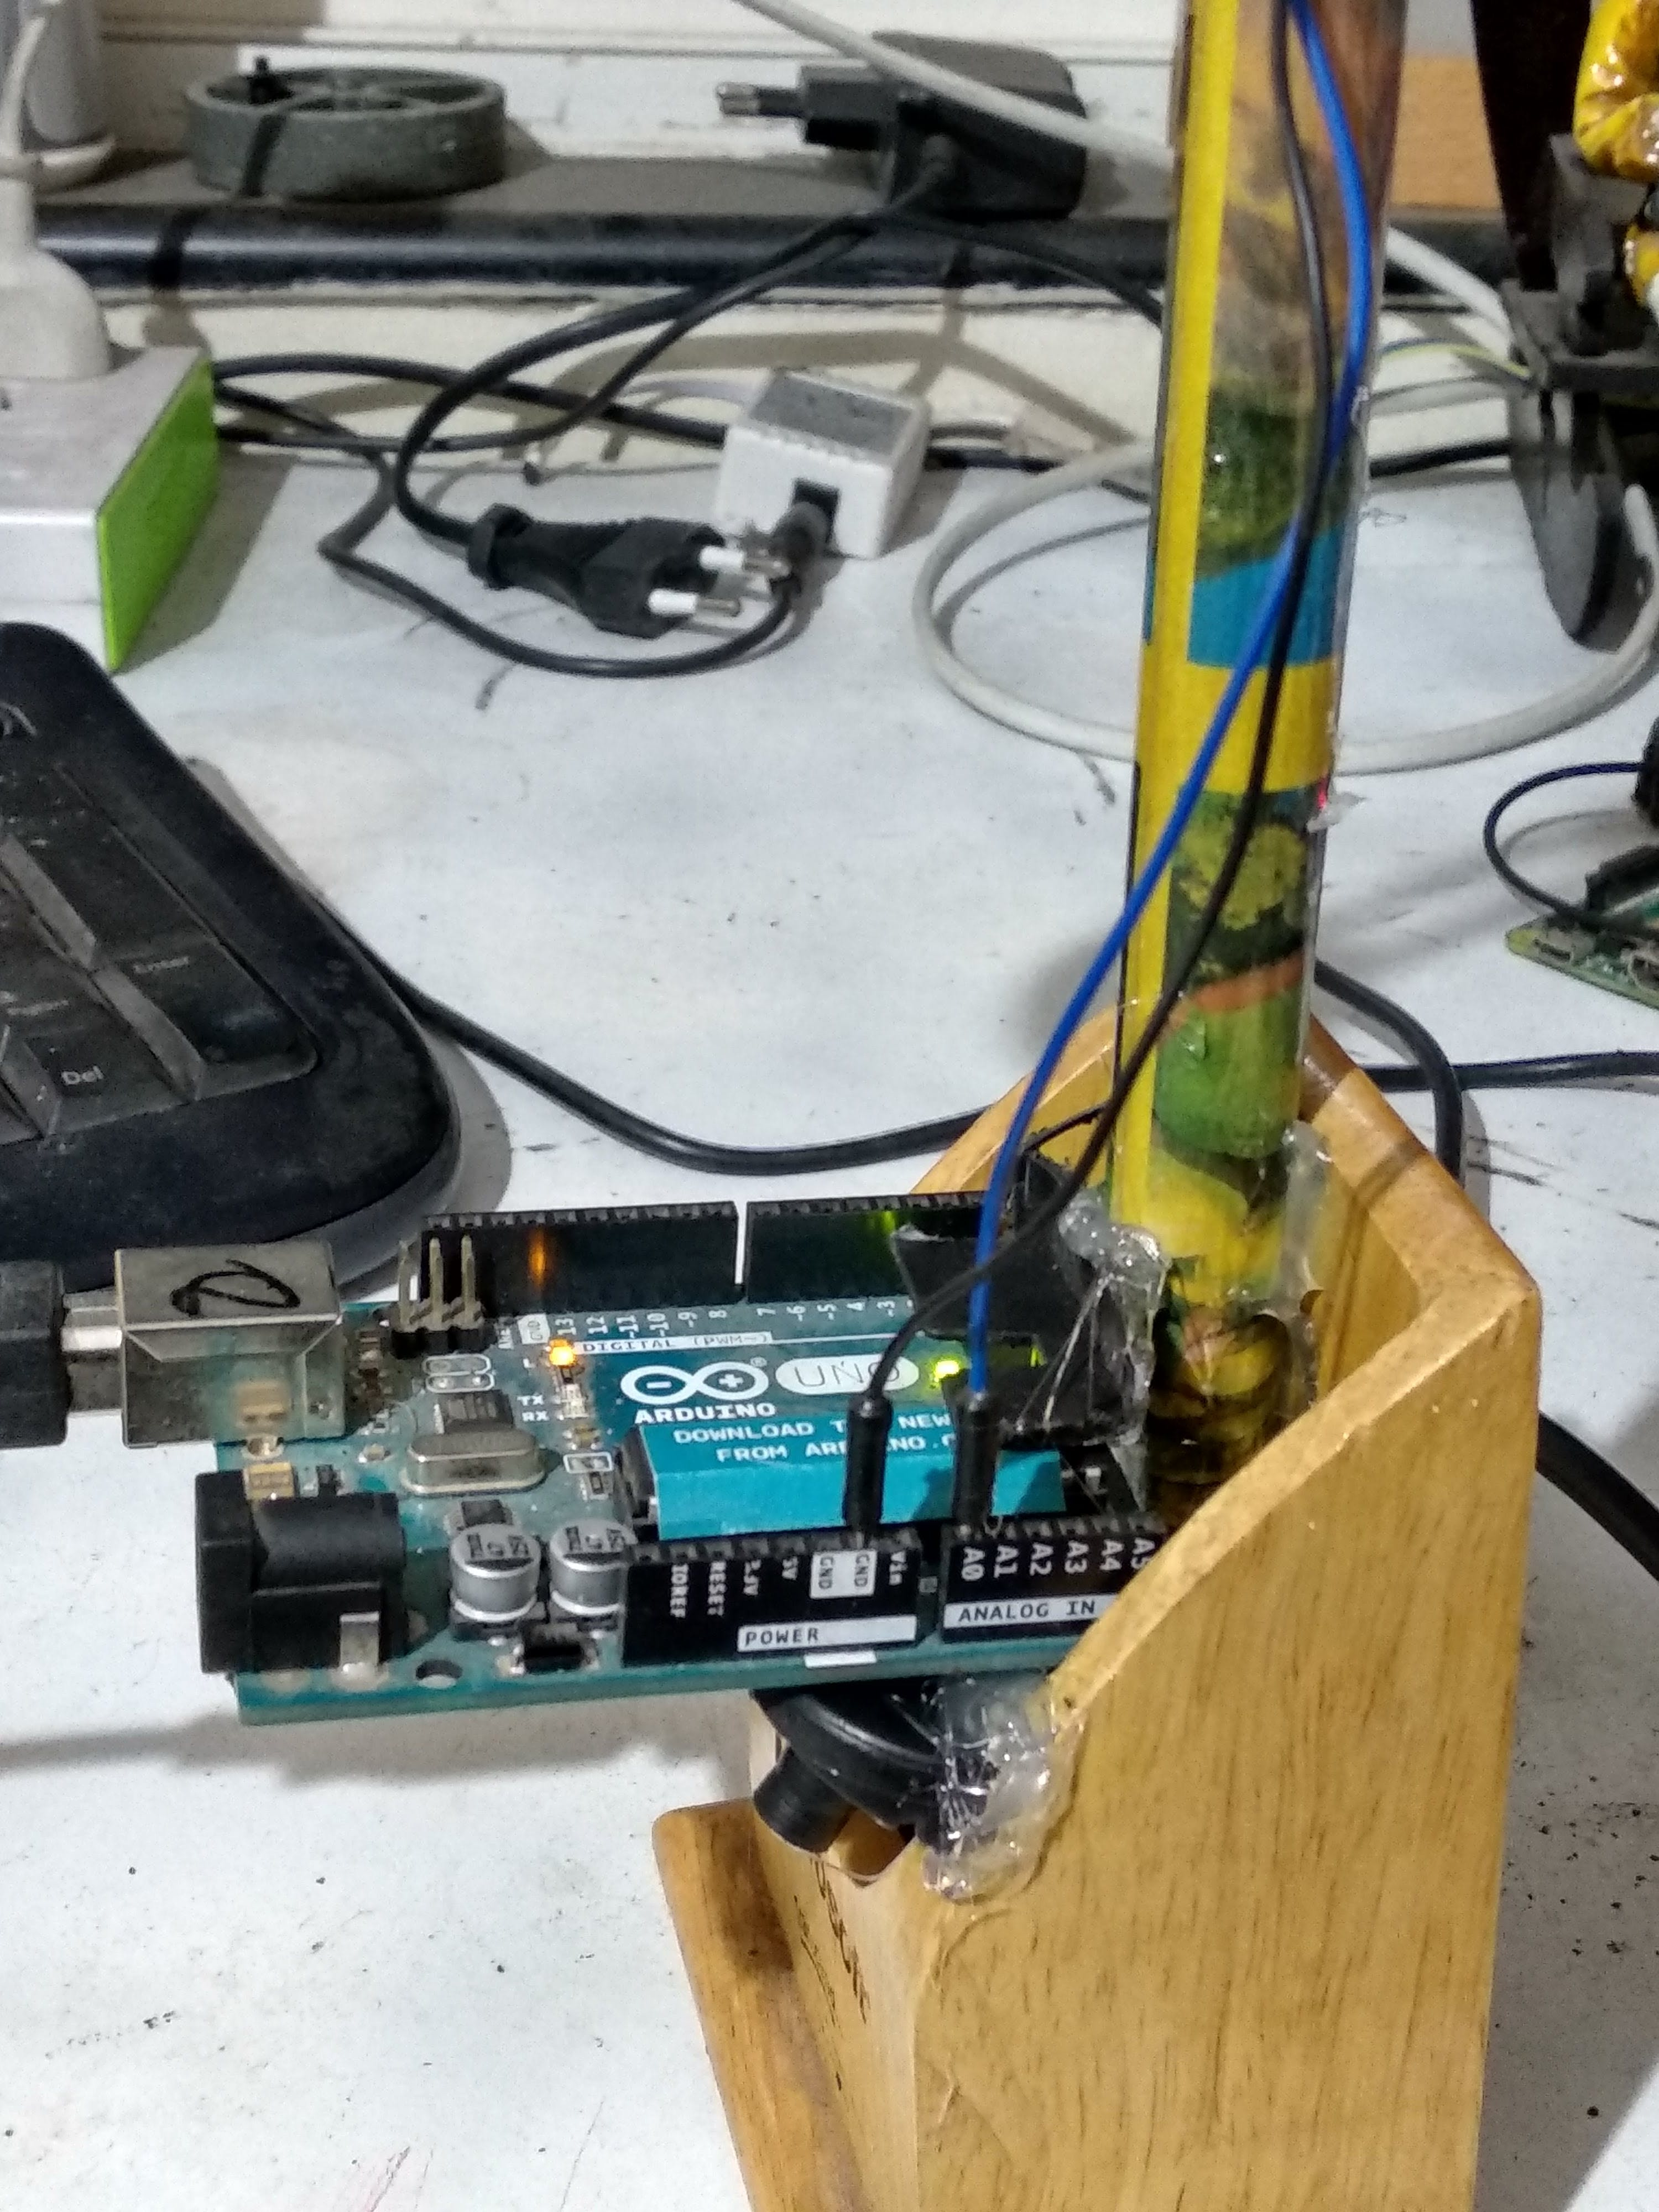 Arduino board mounted with the assembly